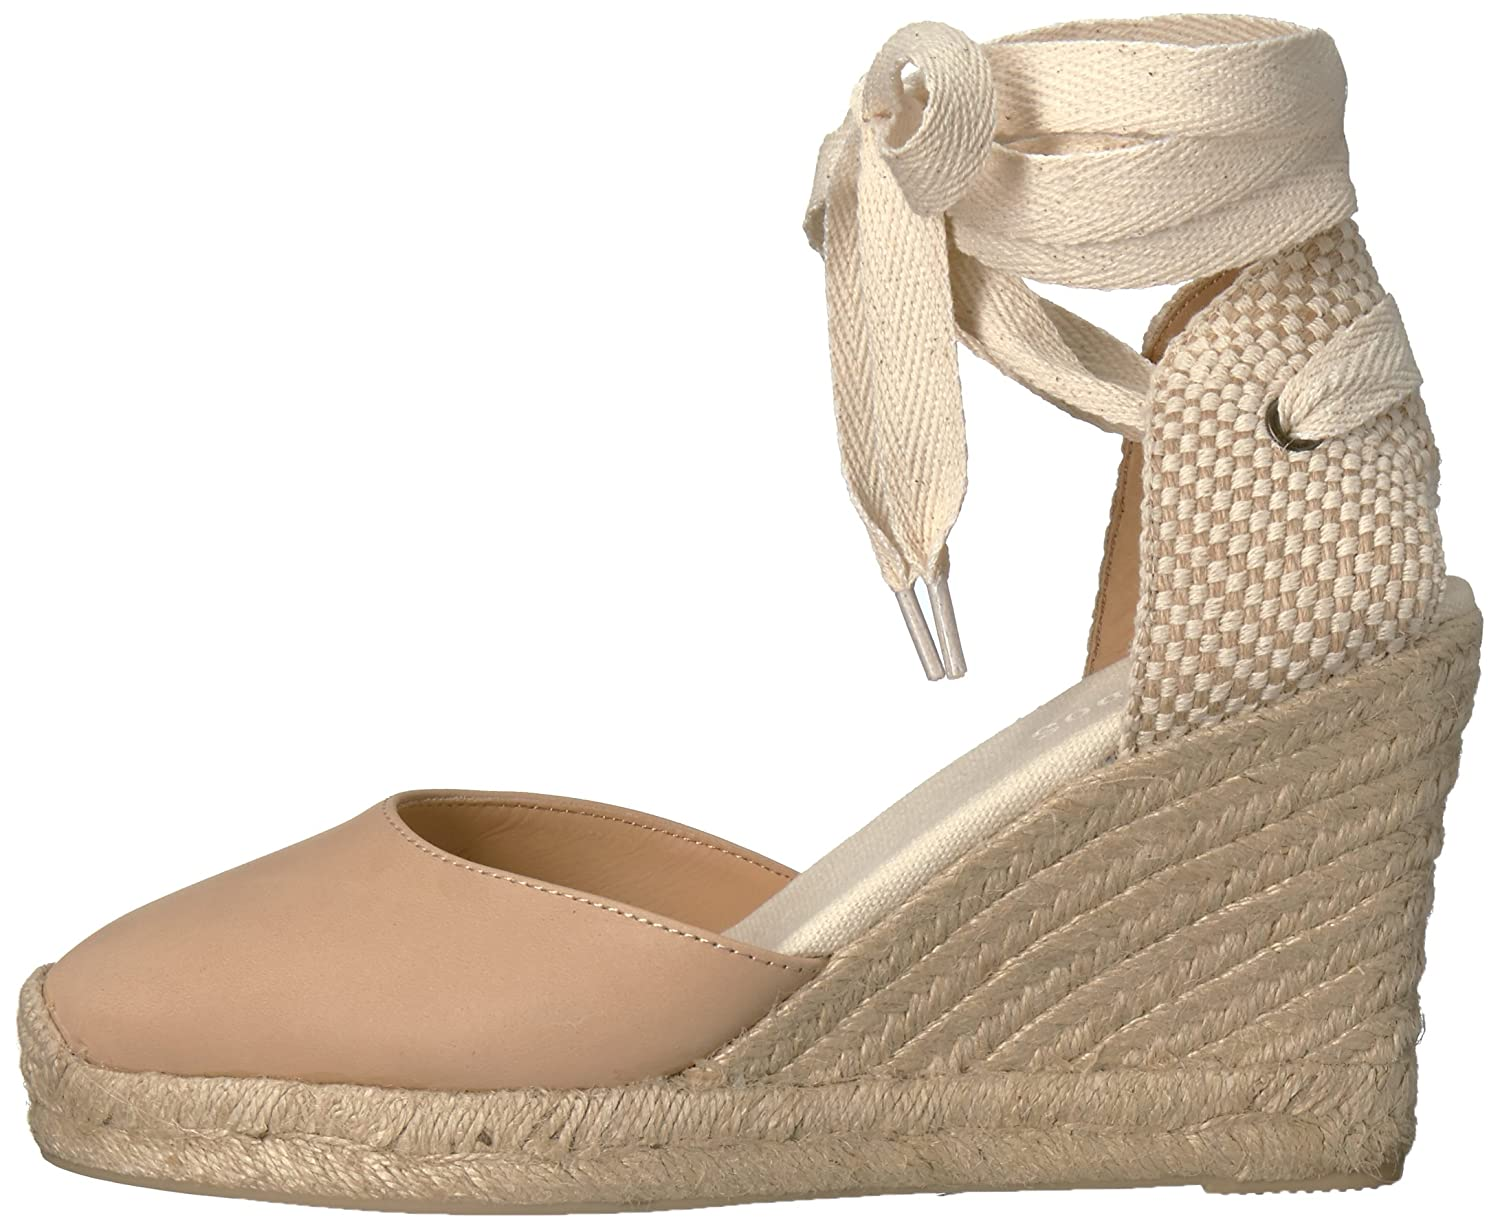 Soludos Women's Tall (90mm) Wedge Sandal B06WRRY4F2 6 B(M) US|Nude